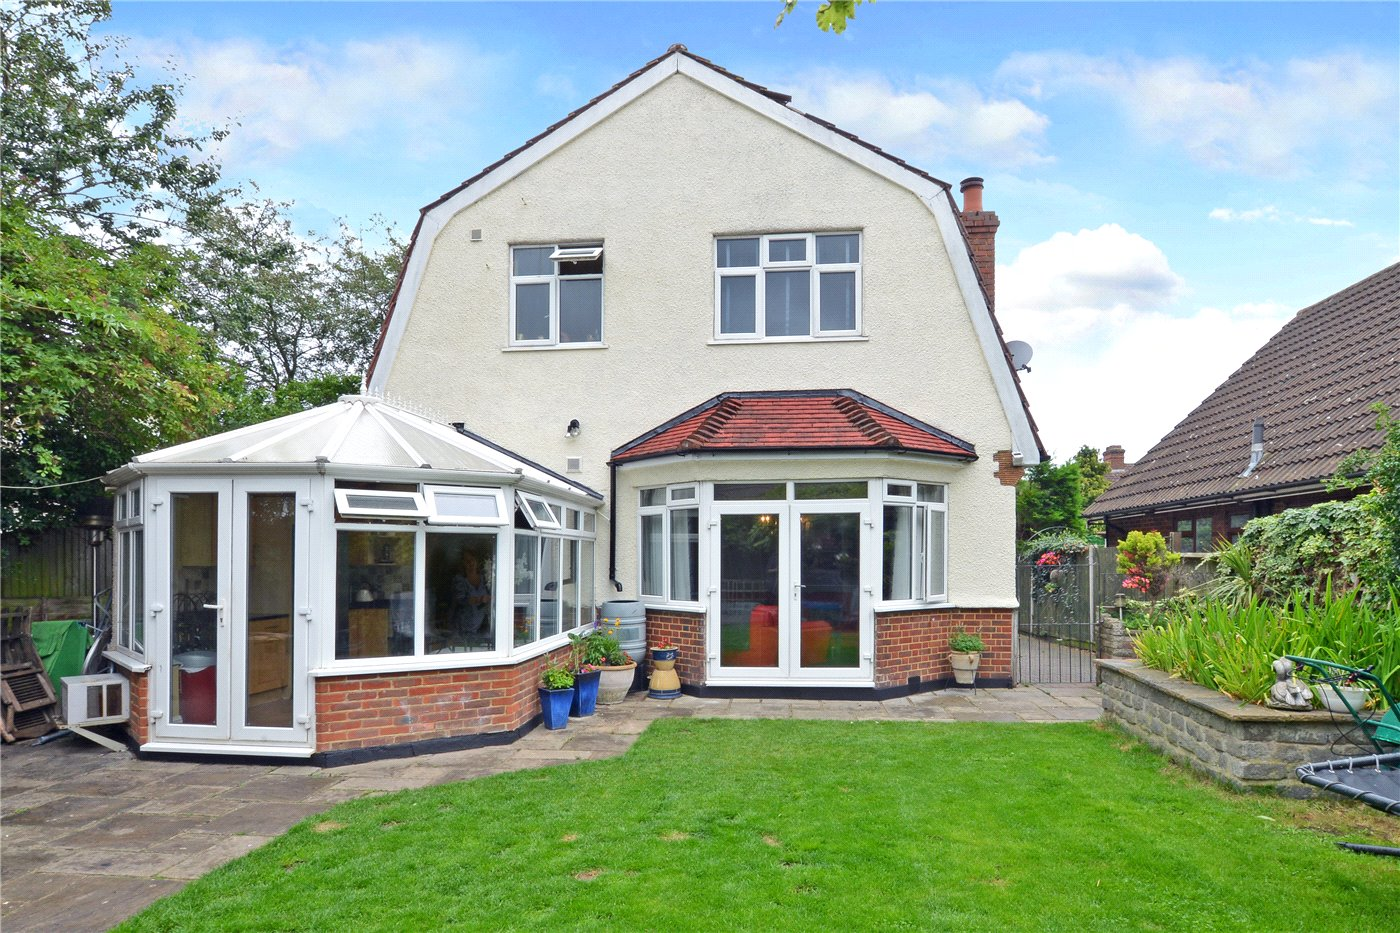 3 Bedrooms Detached House for sale in Boscombe Road, Worcester Park, KT4